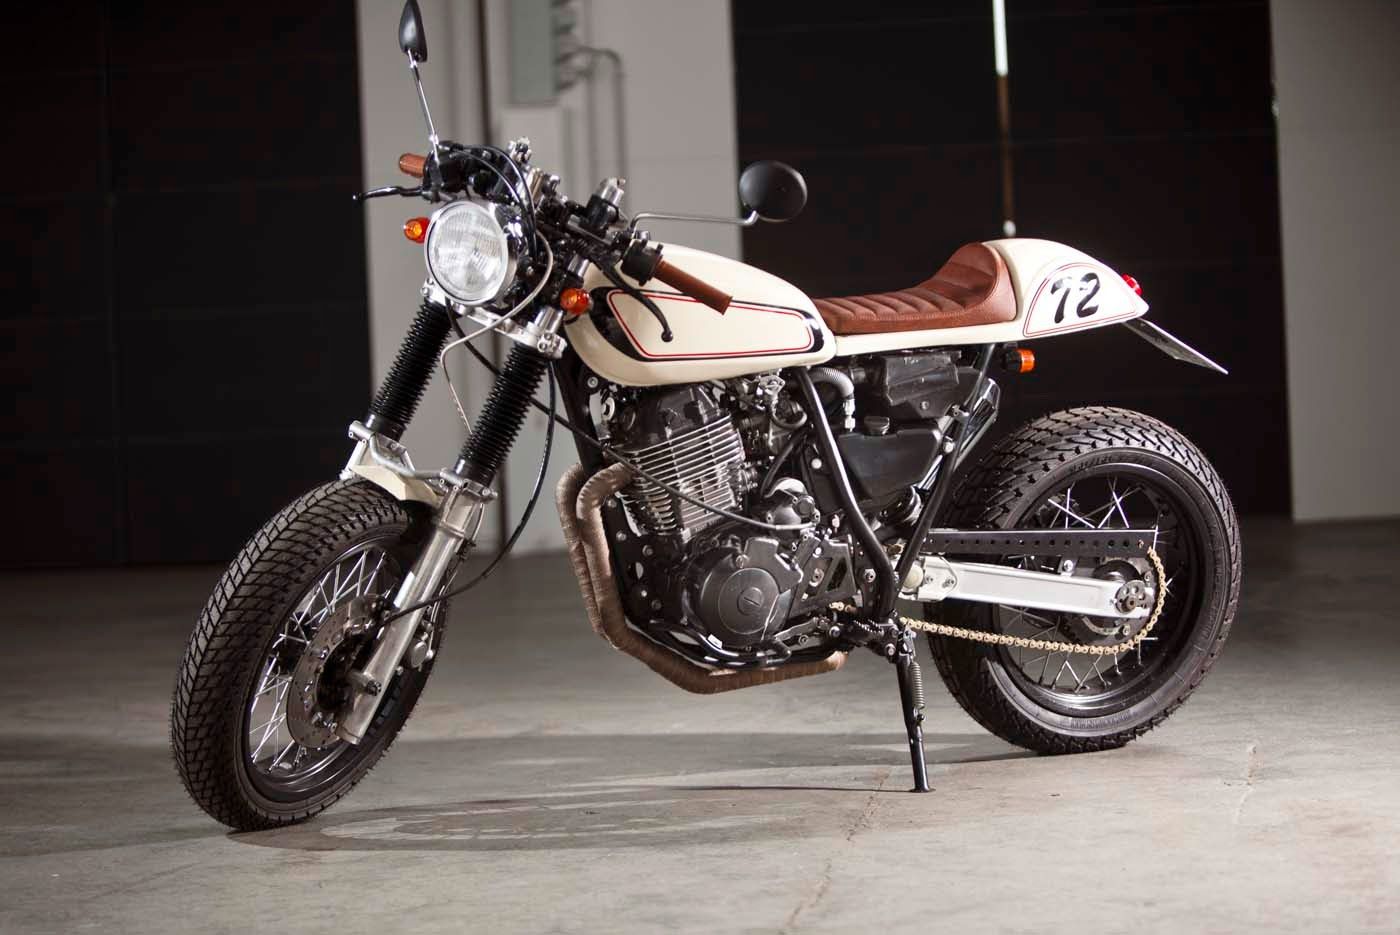 Yamaha XT 600 Cafe Racer | Yamaha Cafe Racer | Yamaha XT 600Z 1VJ | Yamaha Cafe Racer Conversion | Yamaha Cafe Racer parts | Yamaha Cafe Racer for sale | Yamaha Cafe Racer seat | Yamaha Cafe Racer project | Benders Echte